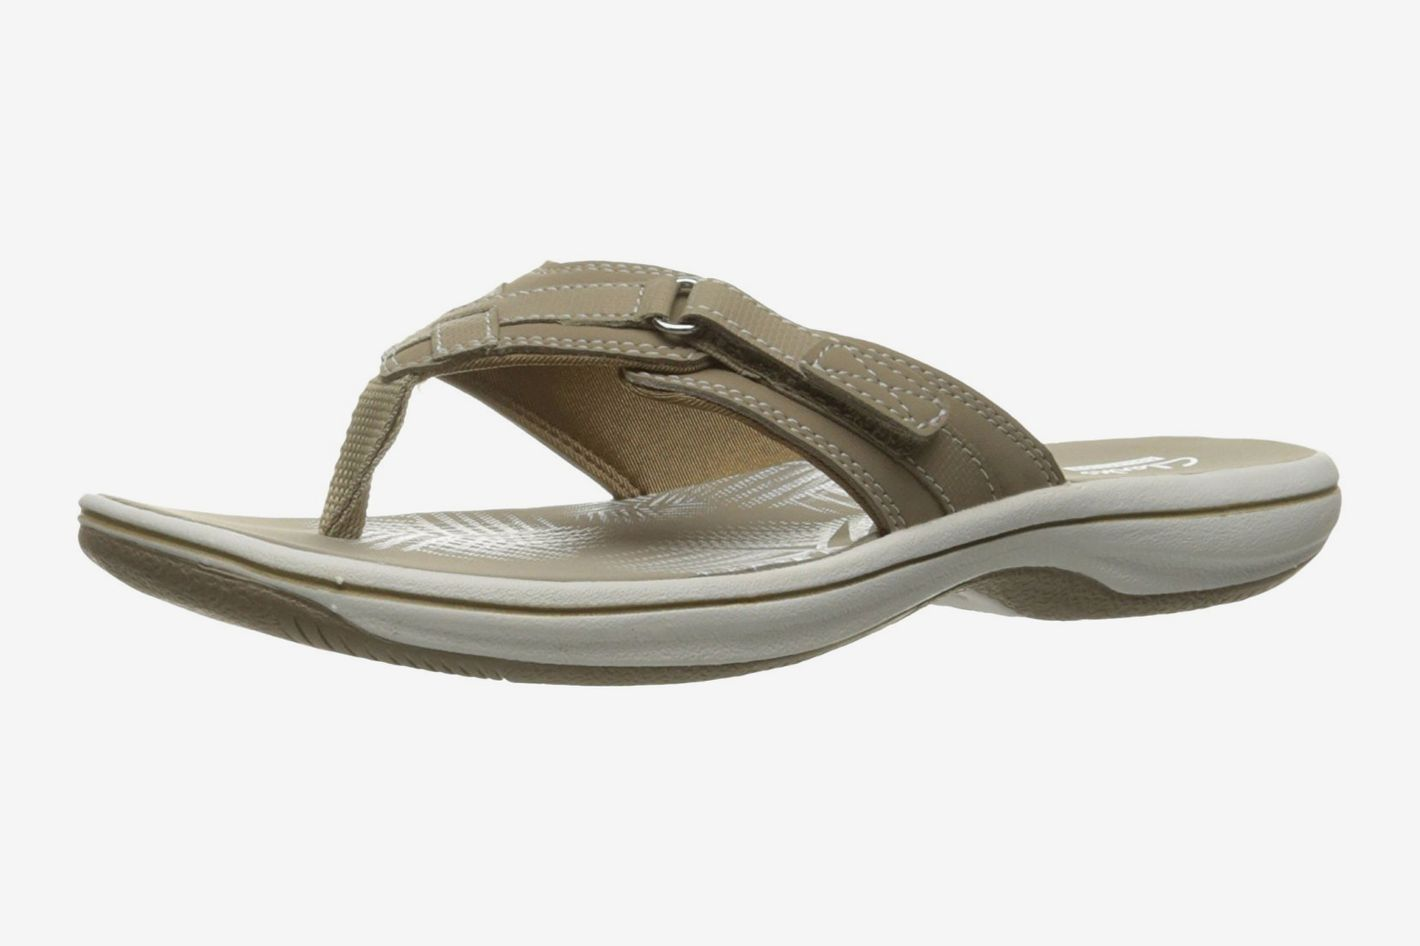 eb02a60b416f1b 11 Best Women s Sandals 2018 — Flip-flops